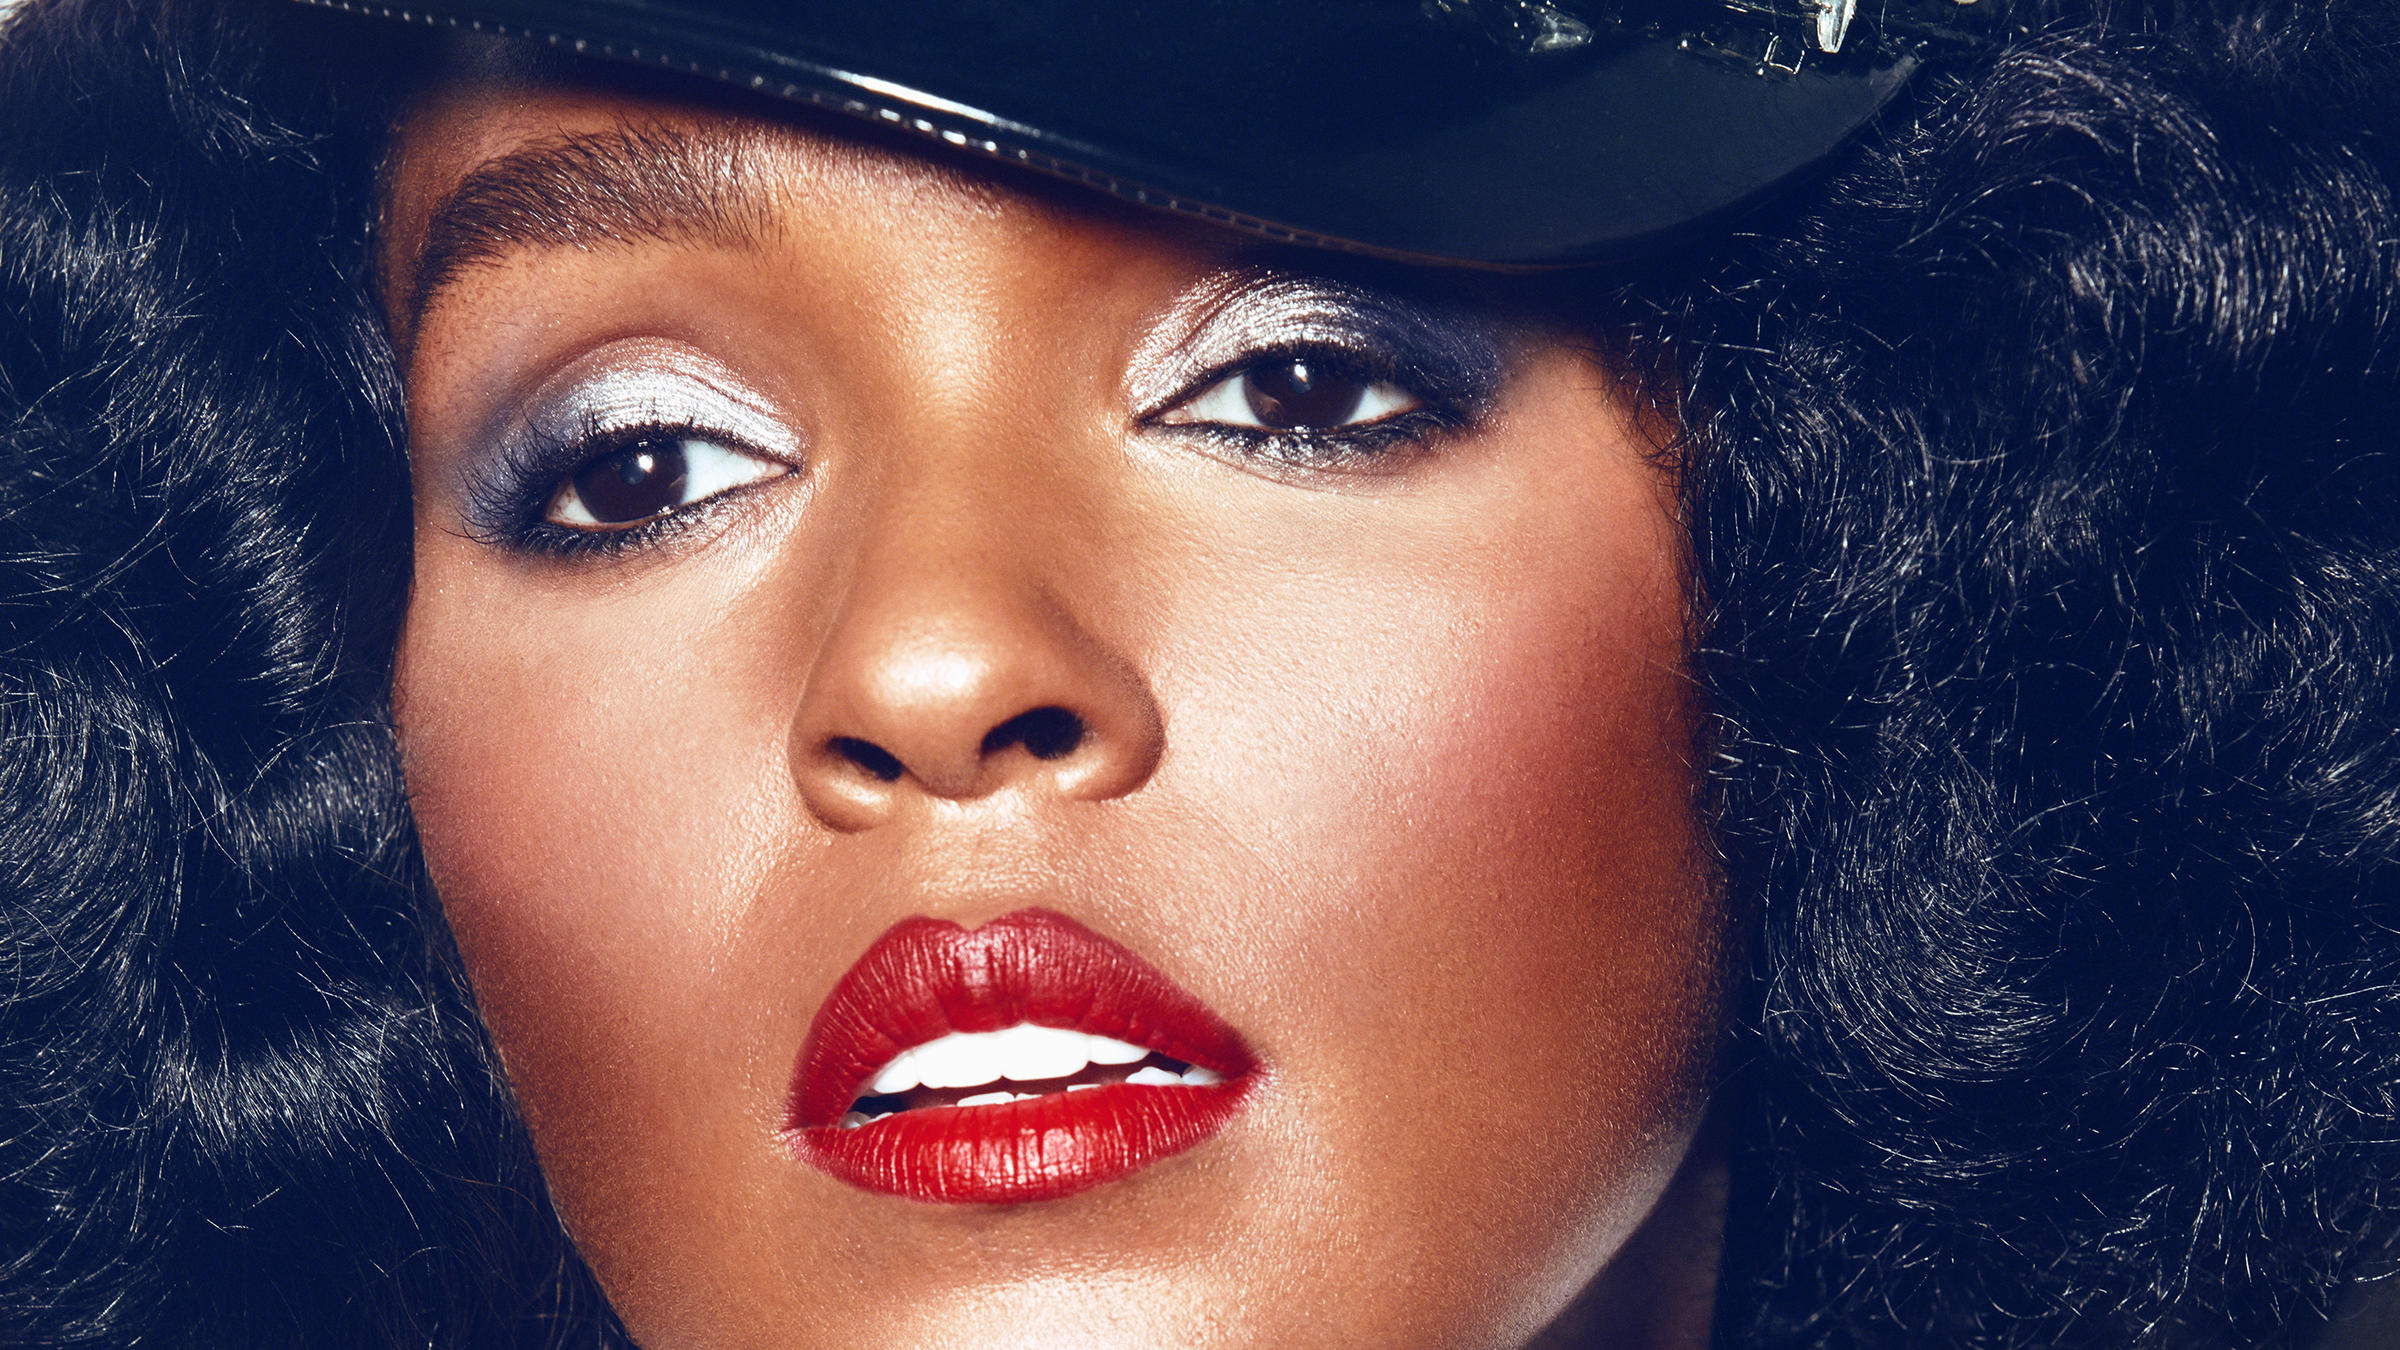 Janelle Monáe Just Dropped The Most Insane Trailer For Her Next Album